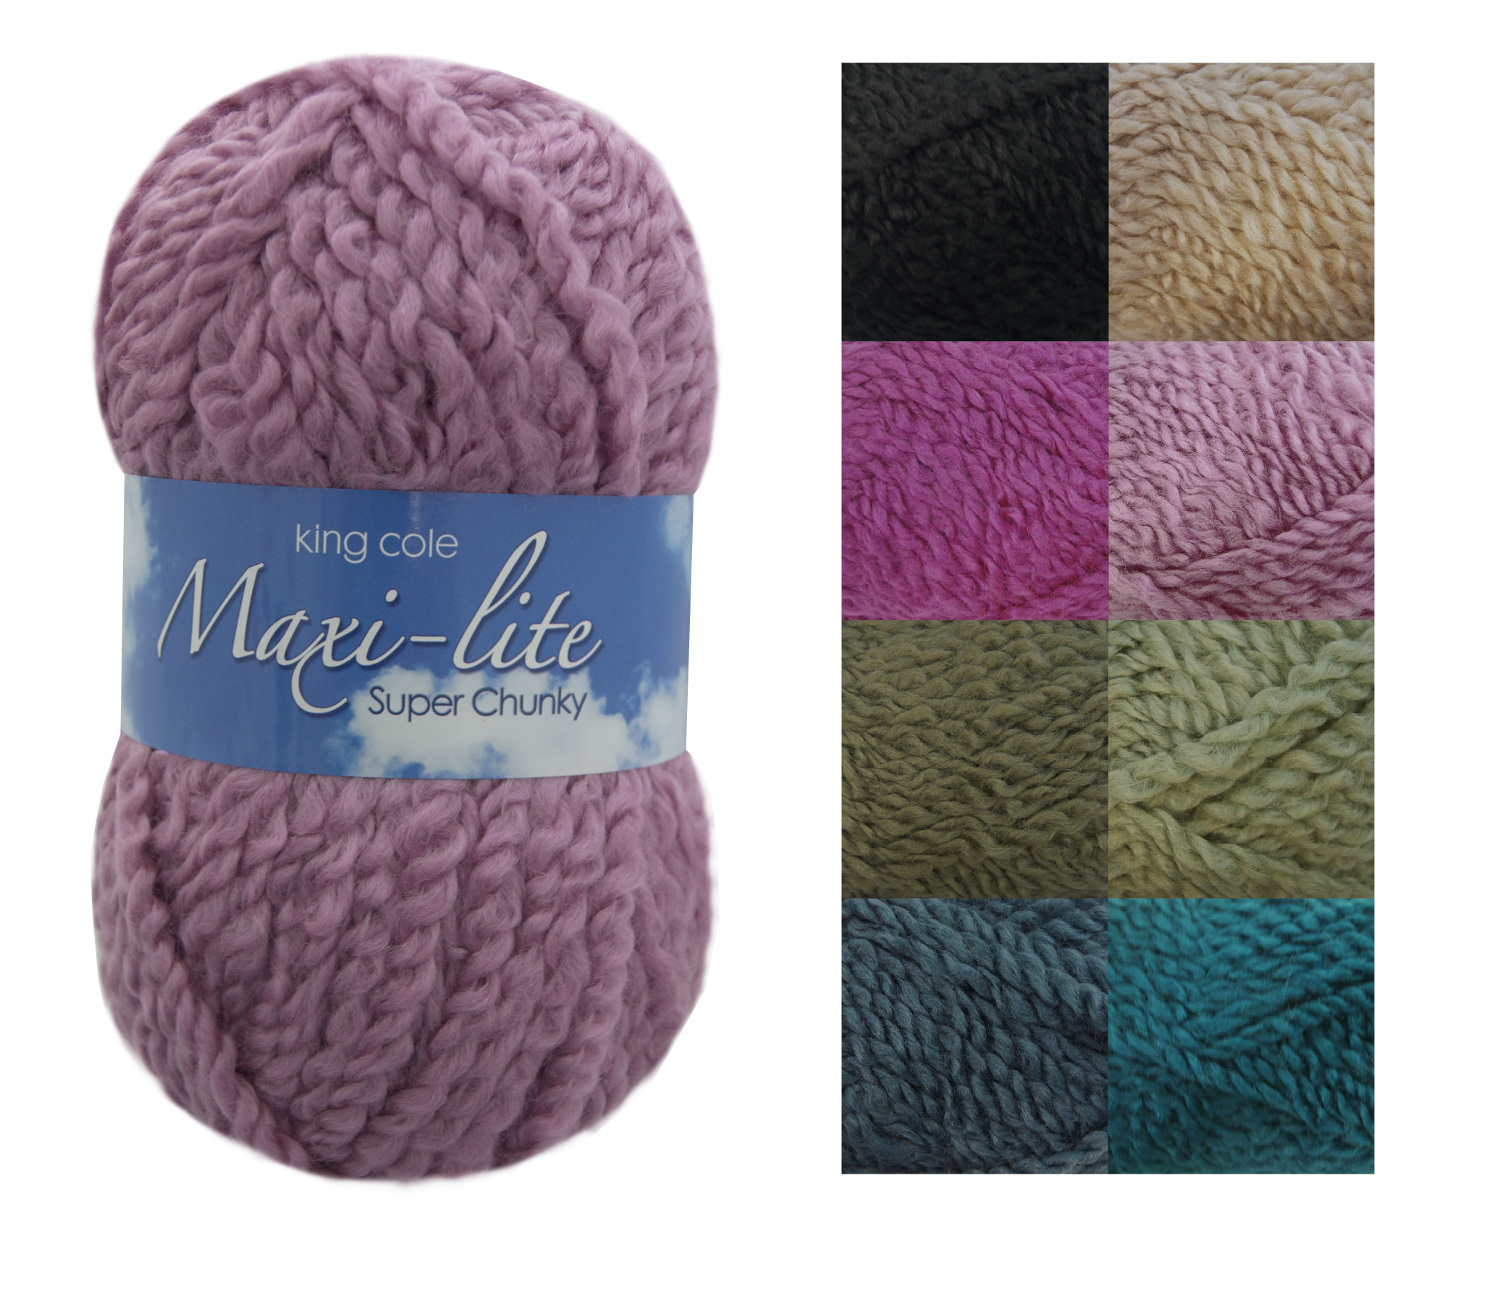 Acrylic Yarn : ... 100g Ball Maxi Lite Chunky Knitting Yarn Super Soft Acrylic Wool Knit